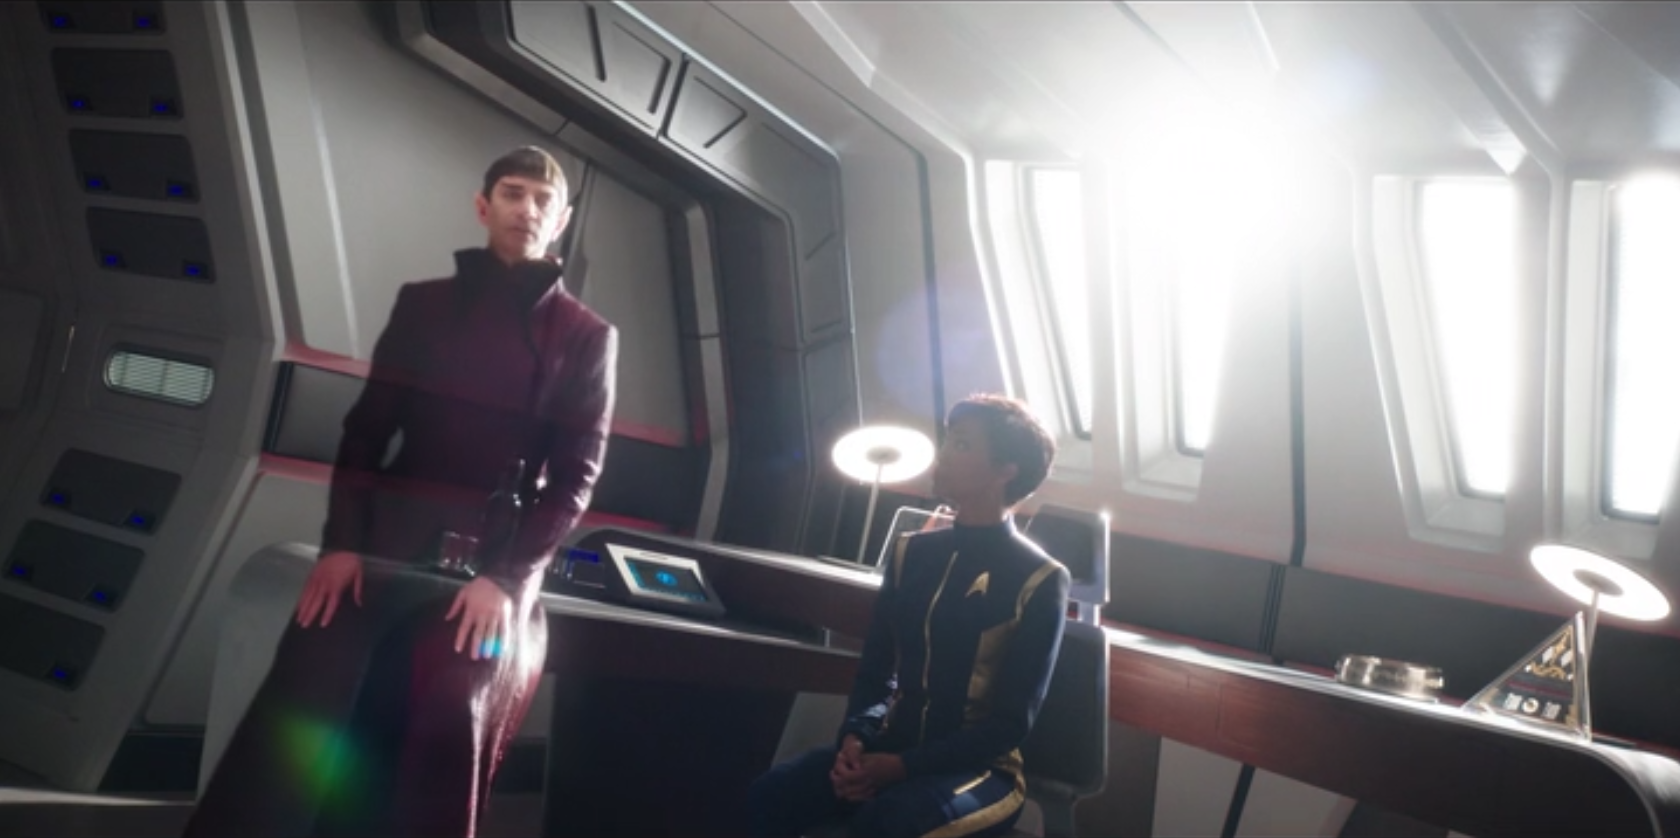 What is your review of Star Trek: Discovery? - Quora